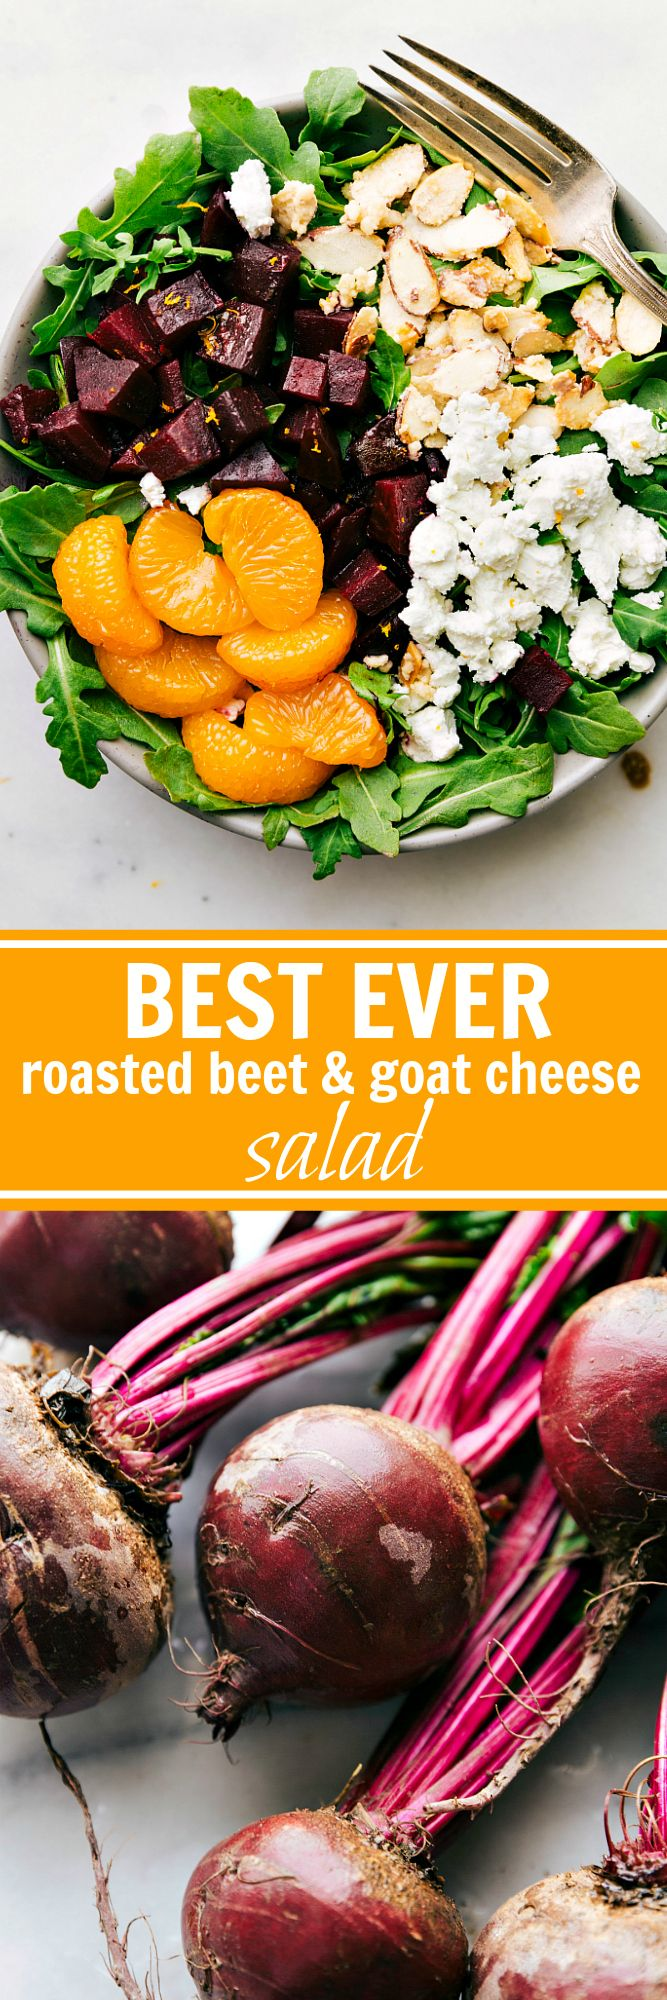 The BEST roasted beets ever!! Salt roasted beets coated in balsamic vinaigrette and tossed with arugula, easy (2-ingredients) candied almonds, mandarin oranges, and goat cheese. I Delicious roasted beet and goat cheese salad! via chelseasmessyapron.com